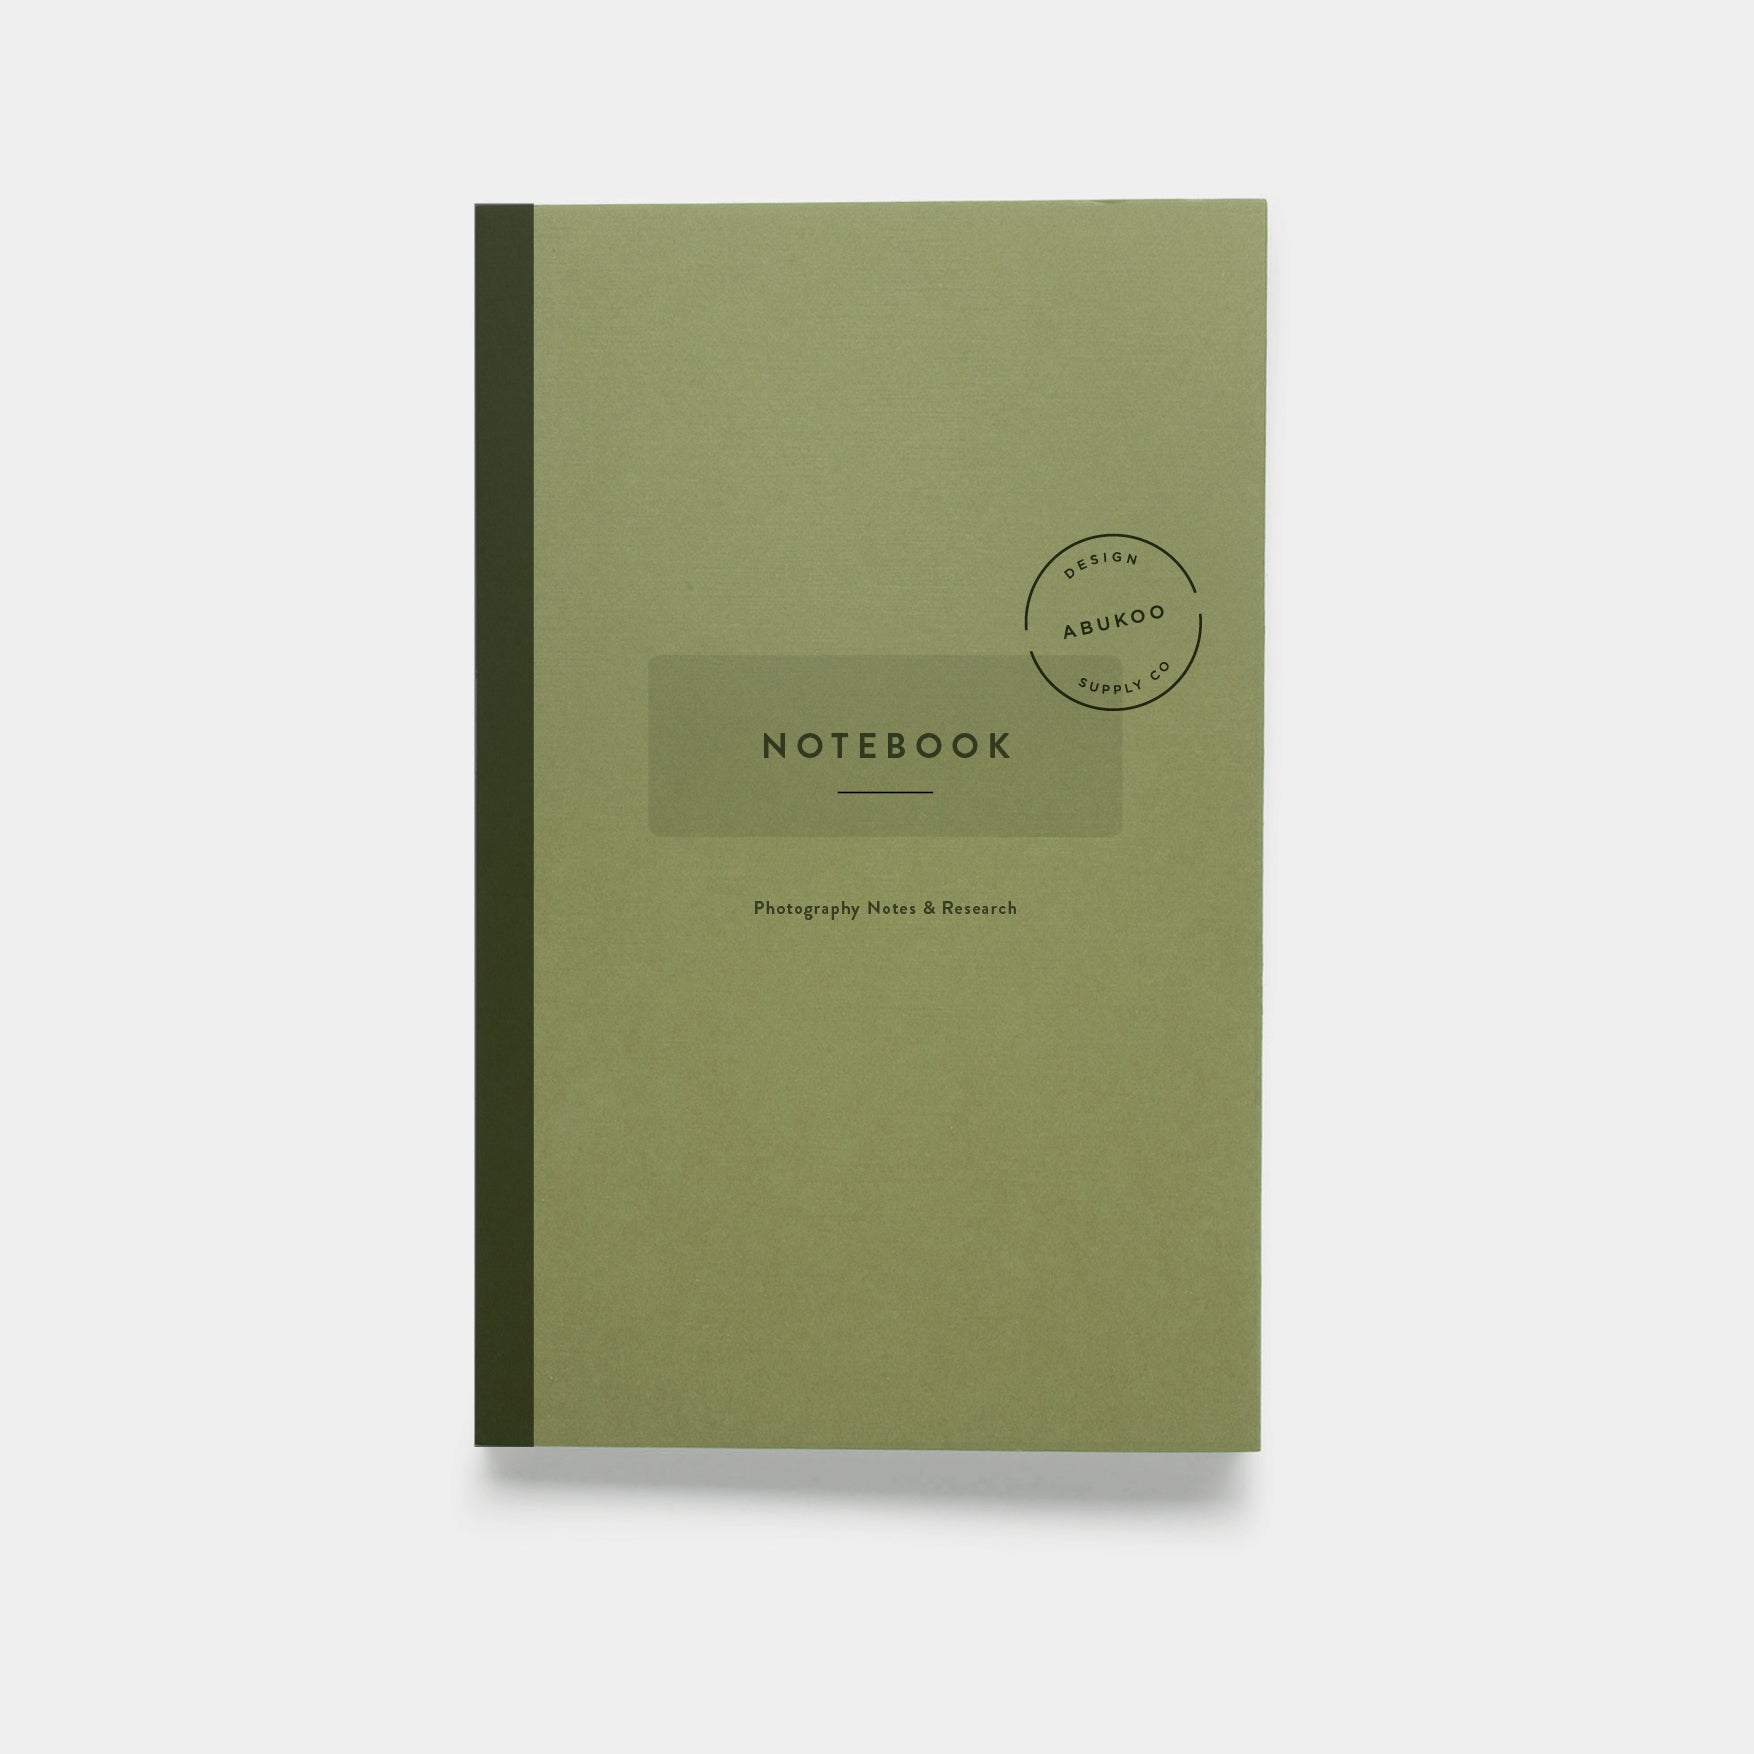 Photography Notebook Design